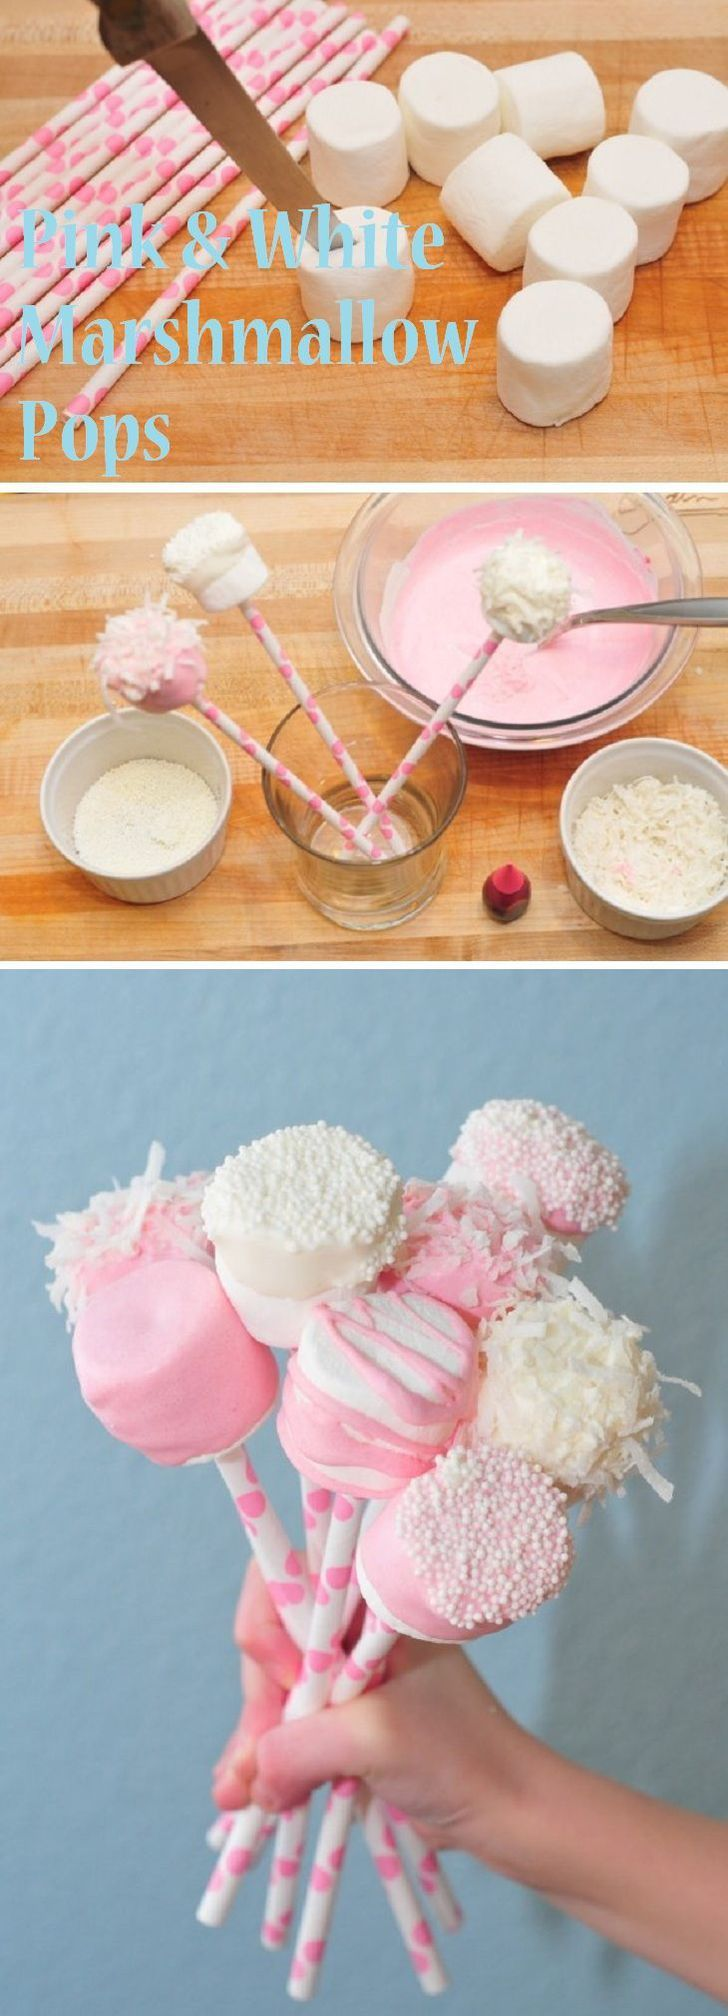 FAVORS?!?! Marshmallow pops.